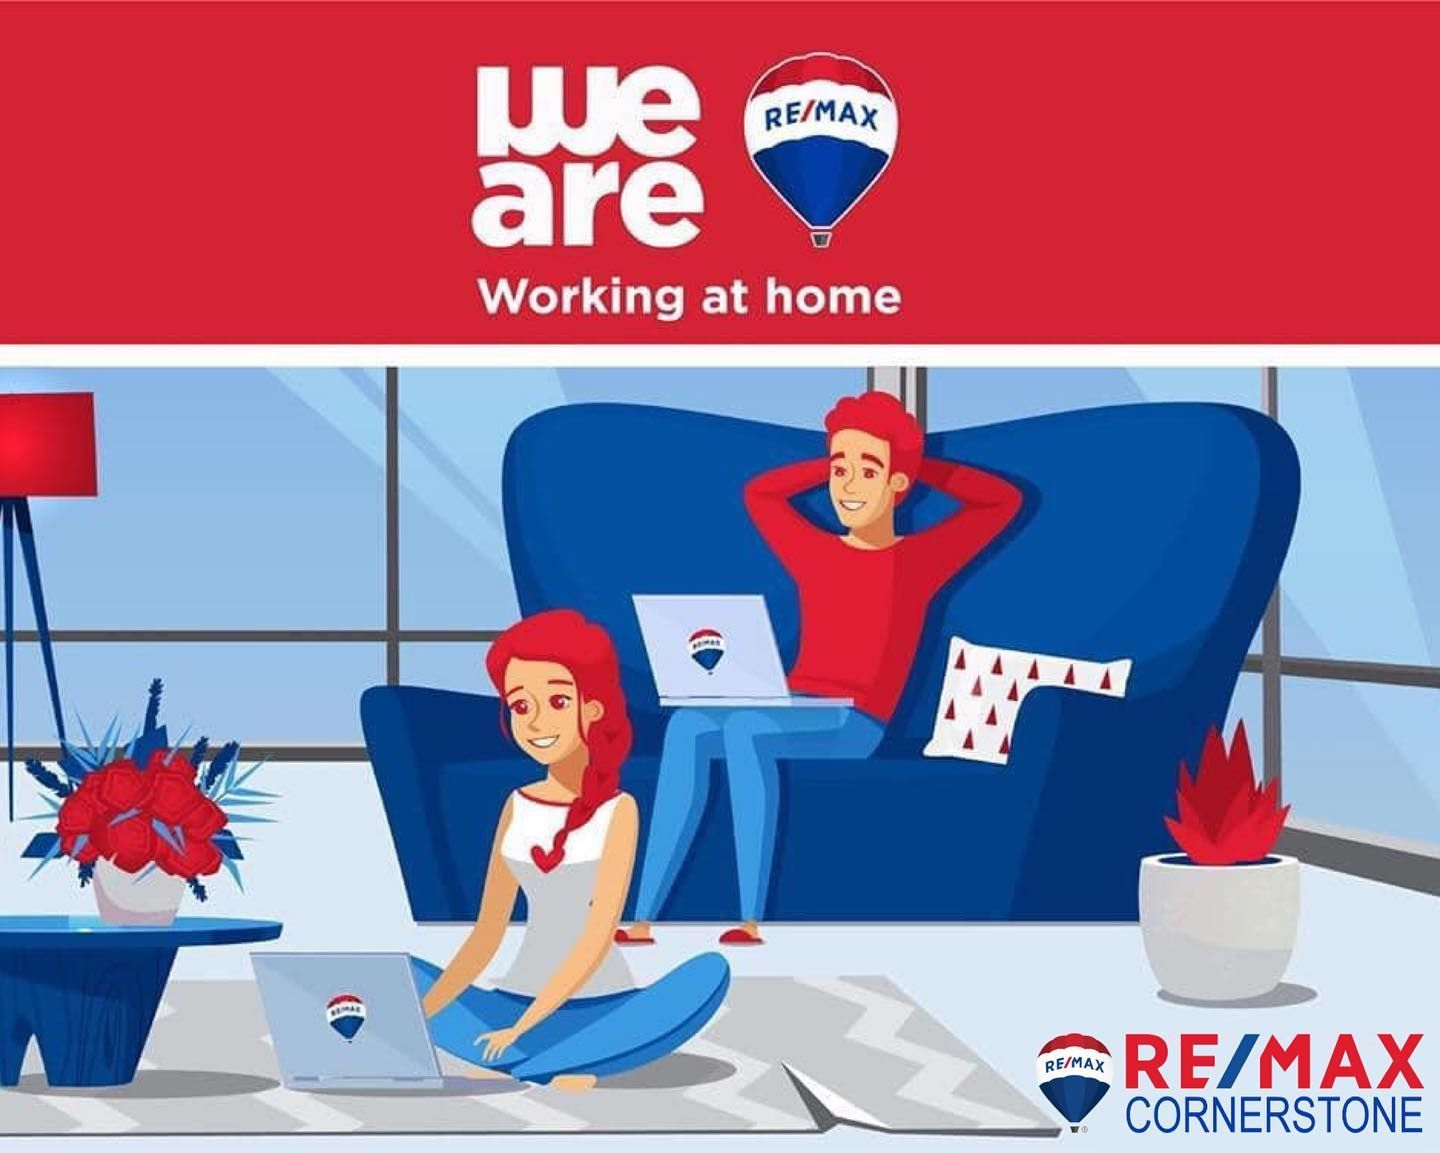 We are virtually here for you or from 6 feet away  #stayathomesavelives #workfromhome #remaxworksforyou #remaxworkshardforyou #remaxrealestateagent  #realestateagents #realtorforyou #realestateinvesting